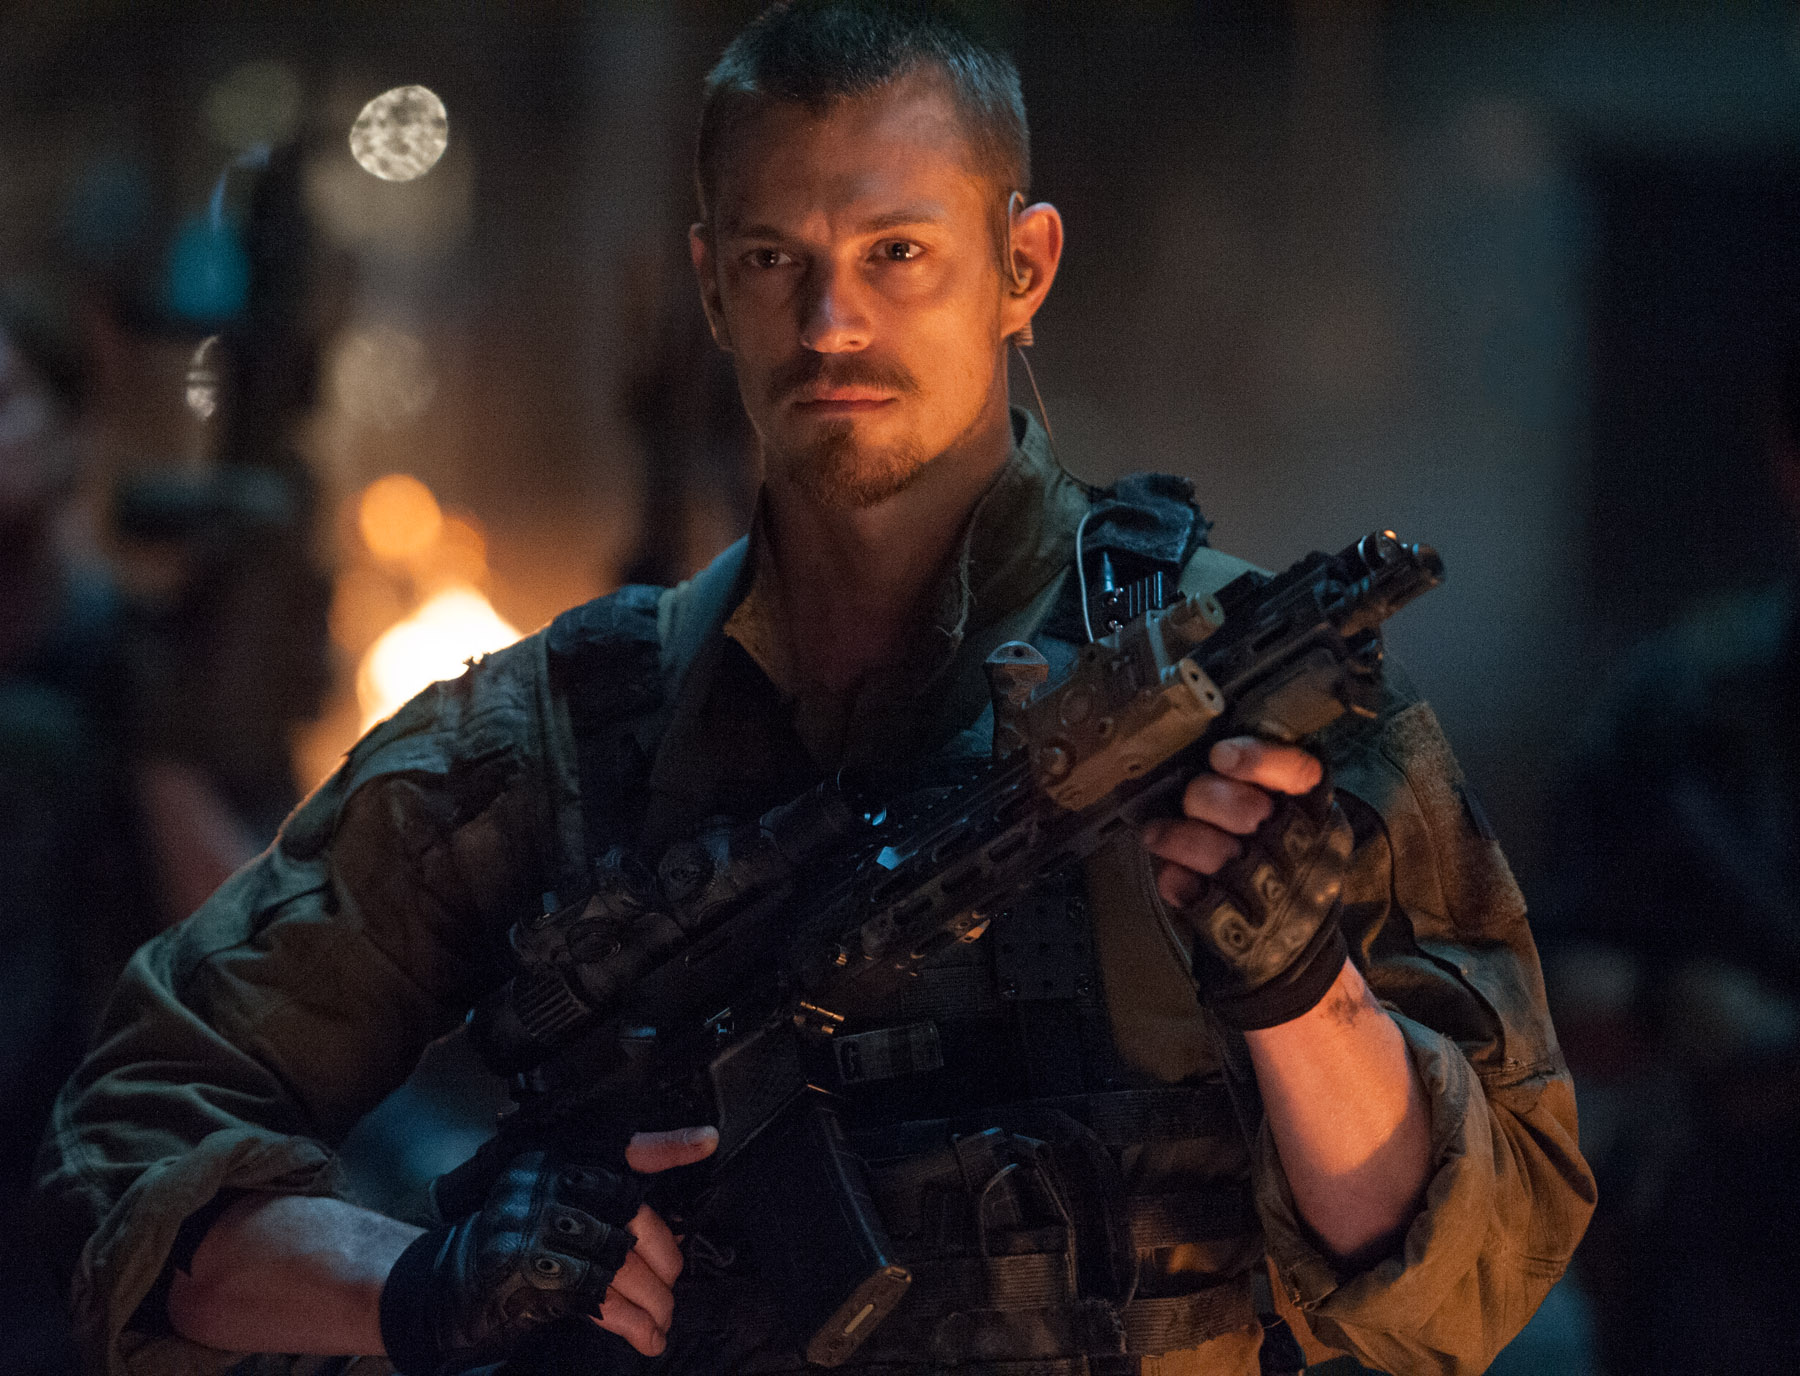 Suicide Squad' Star Joel Kinnaman Is Ready to Be a Leading Man | IndieWire